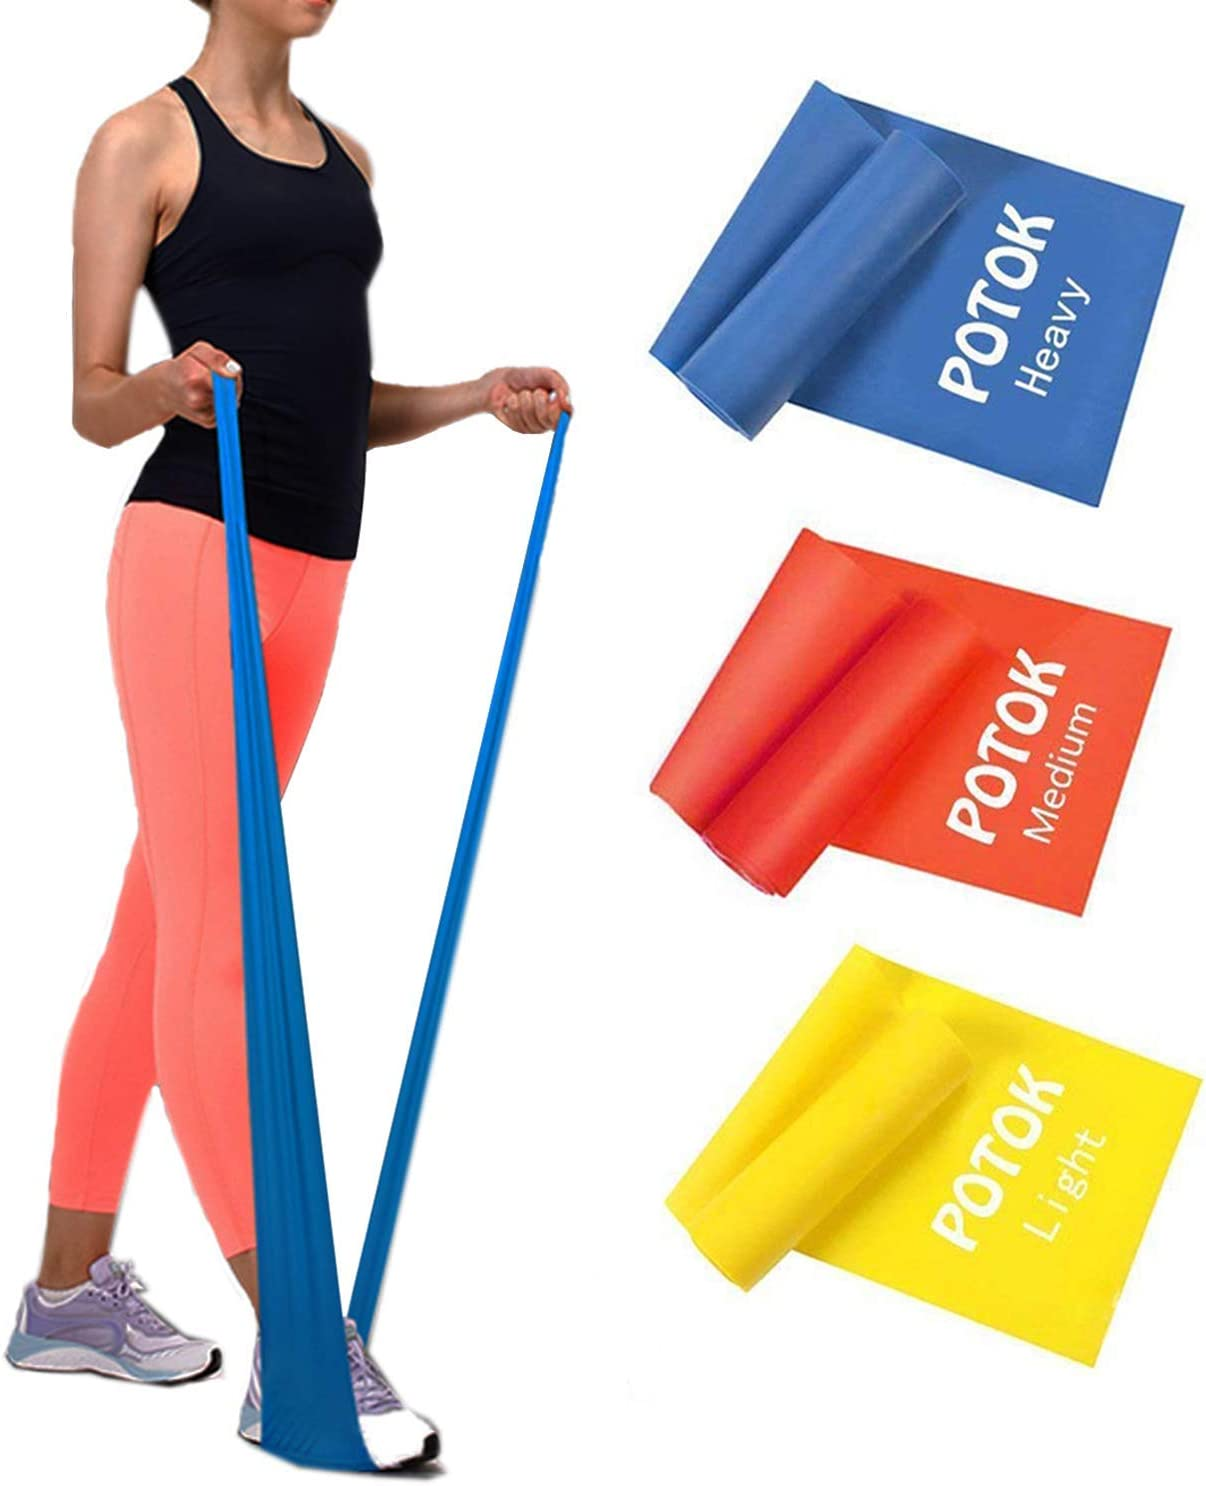 Potok Resistance Branded goods Bands Set 3 Dif Latex with Pack Cheap SALE Start Exercise